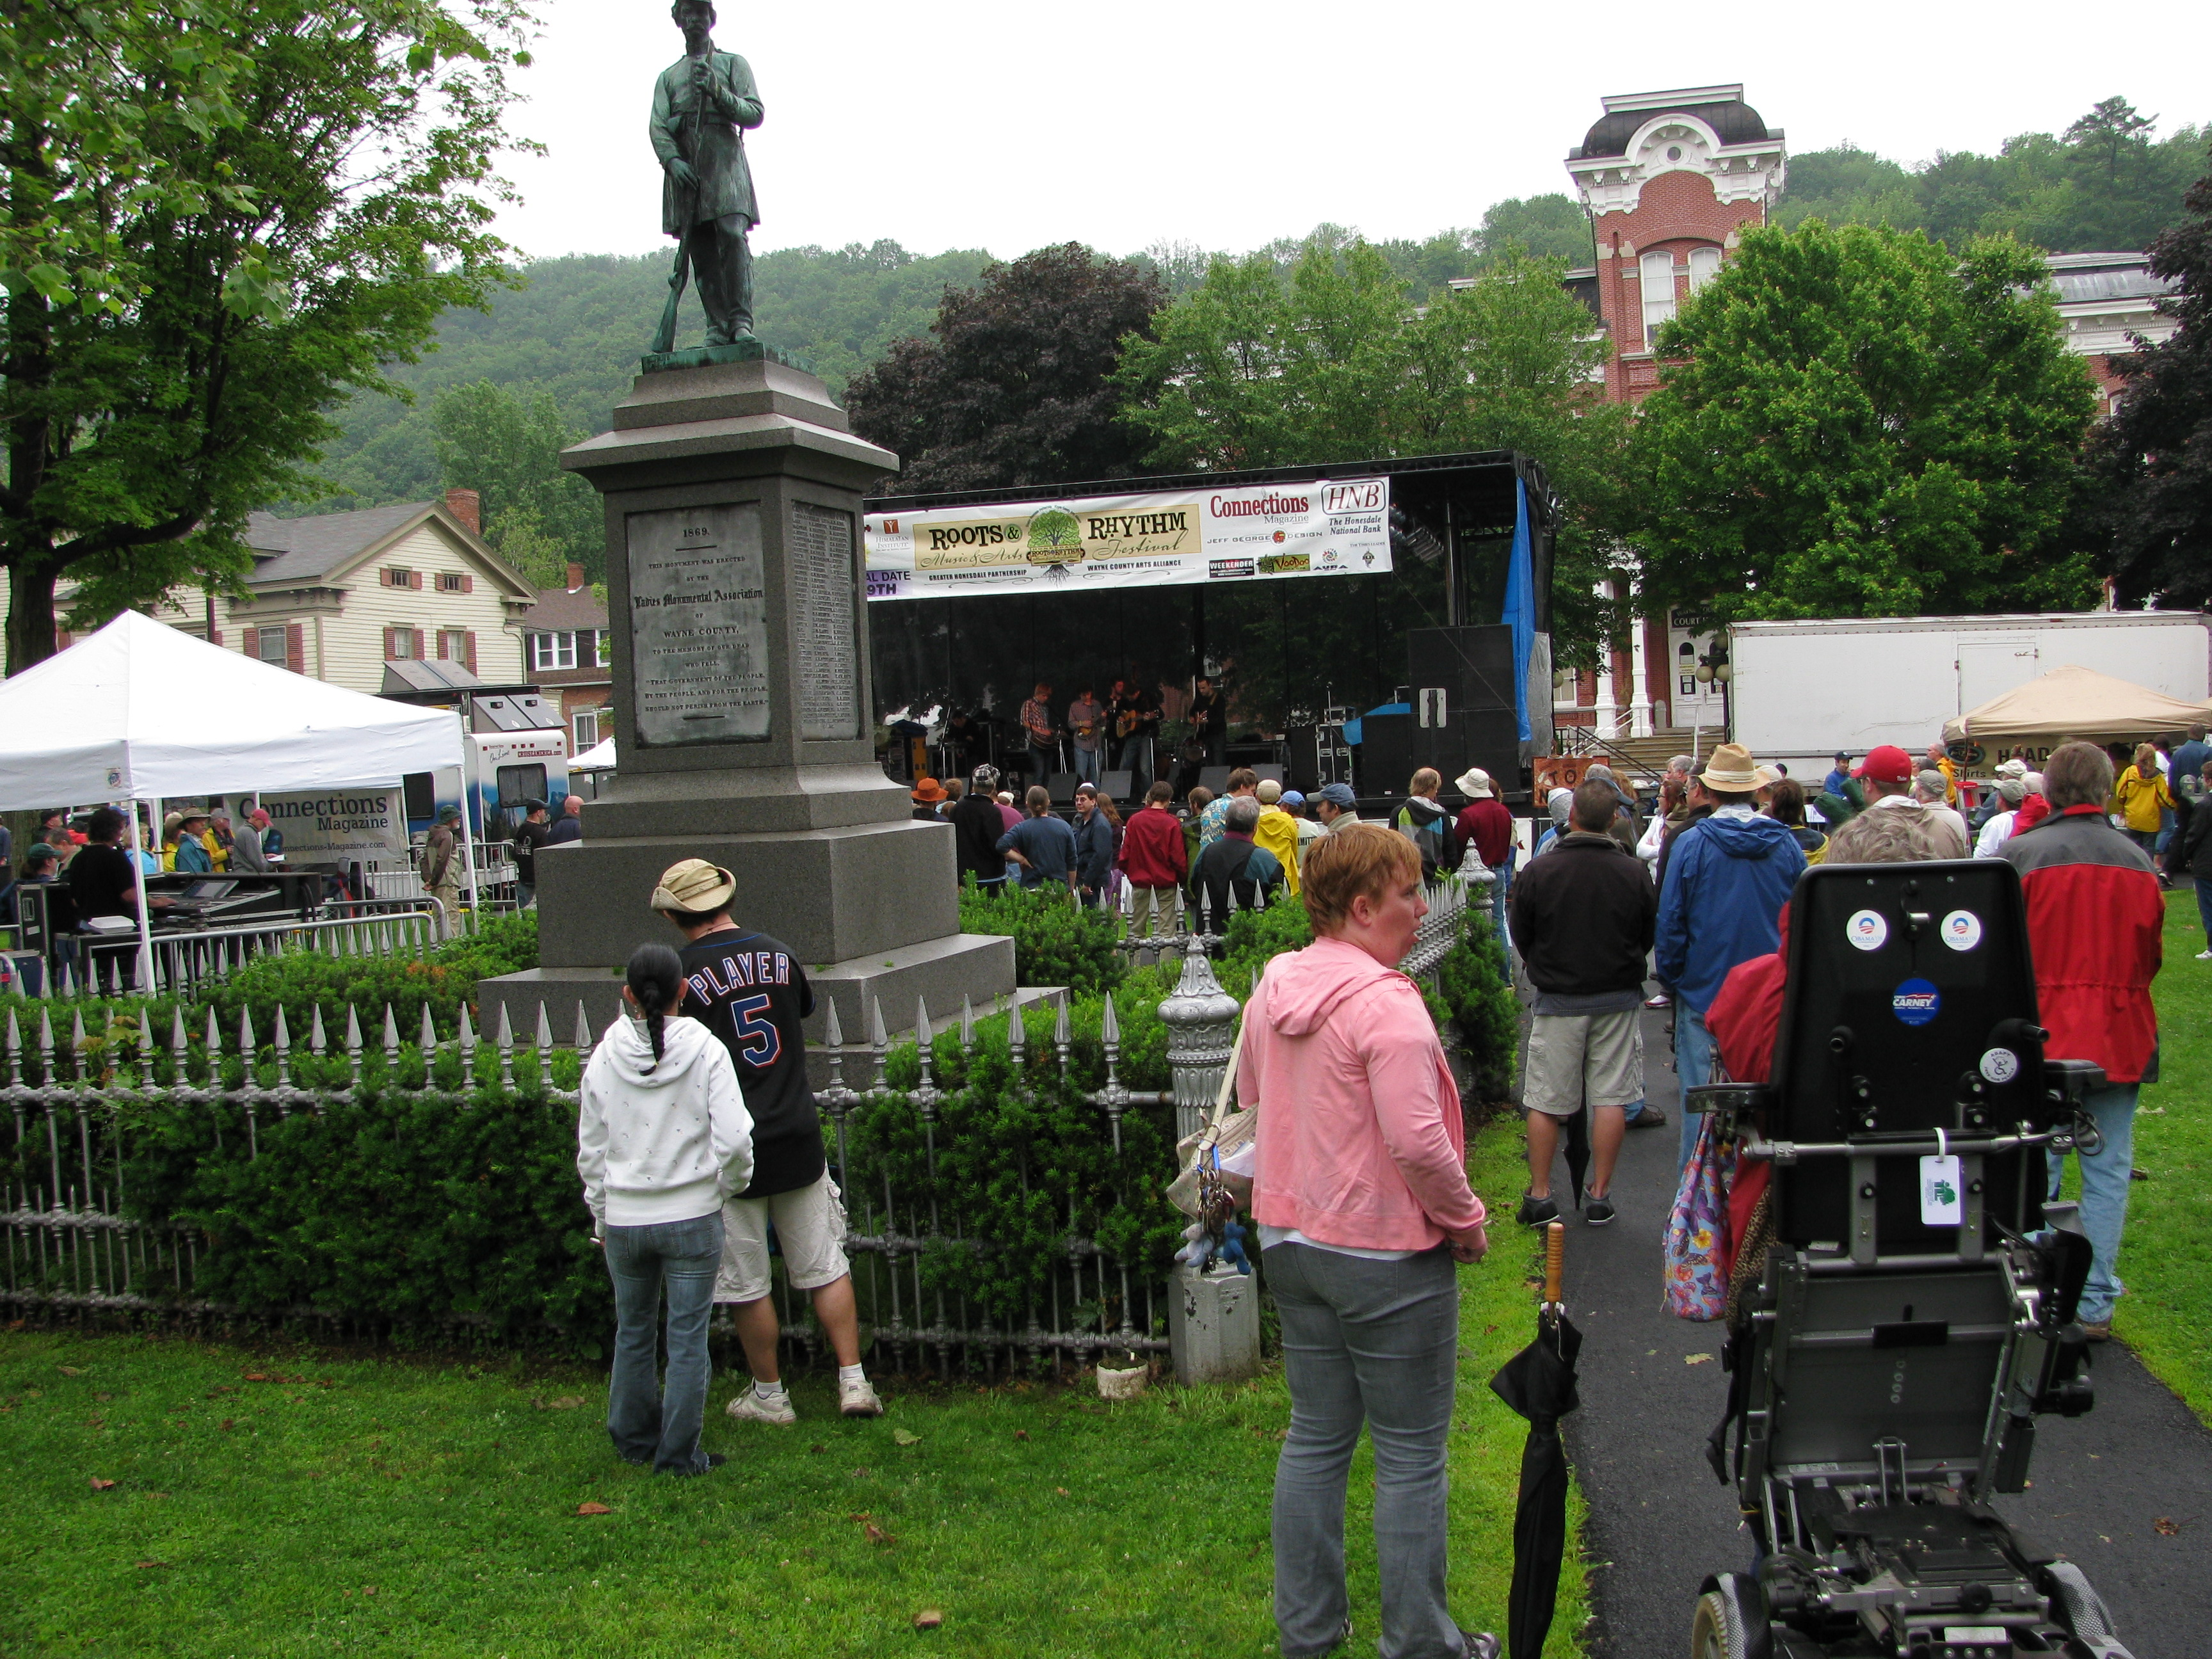 Roots and Rhythm Music and Arts Festival in Honesdale, Wayne County Pennsylvania in the Pocono Mountains